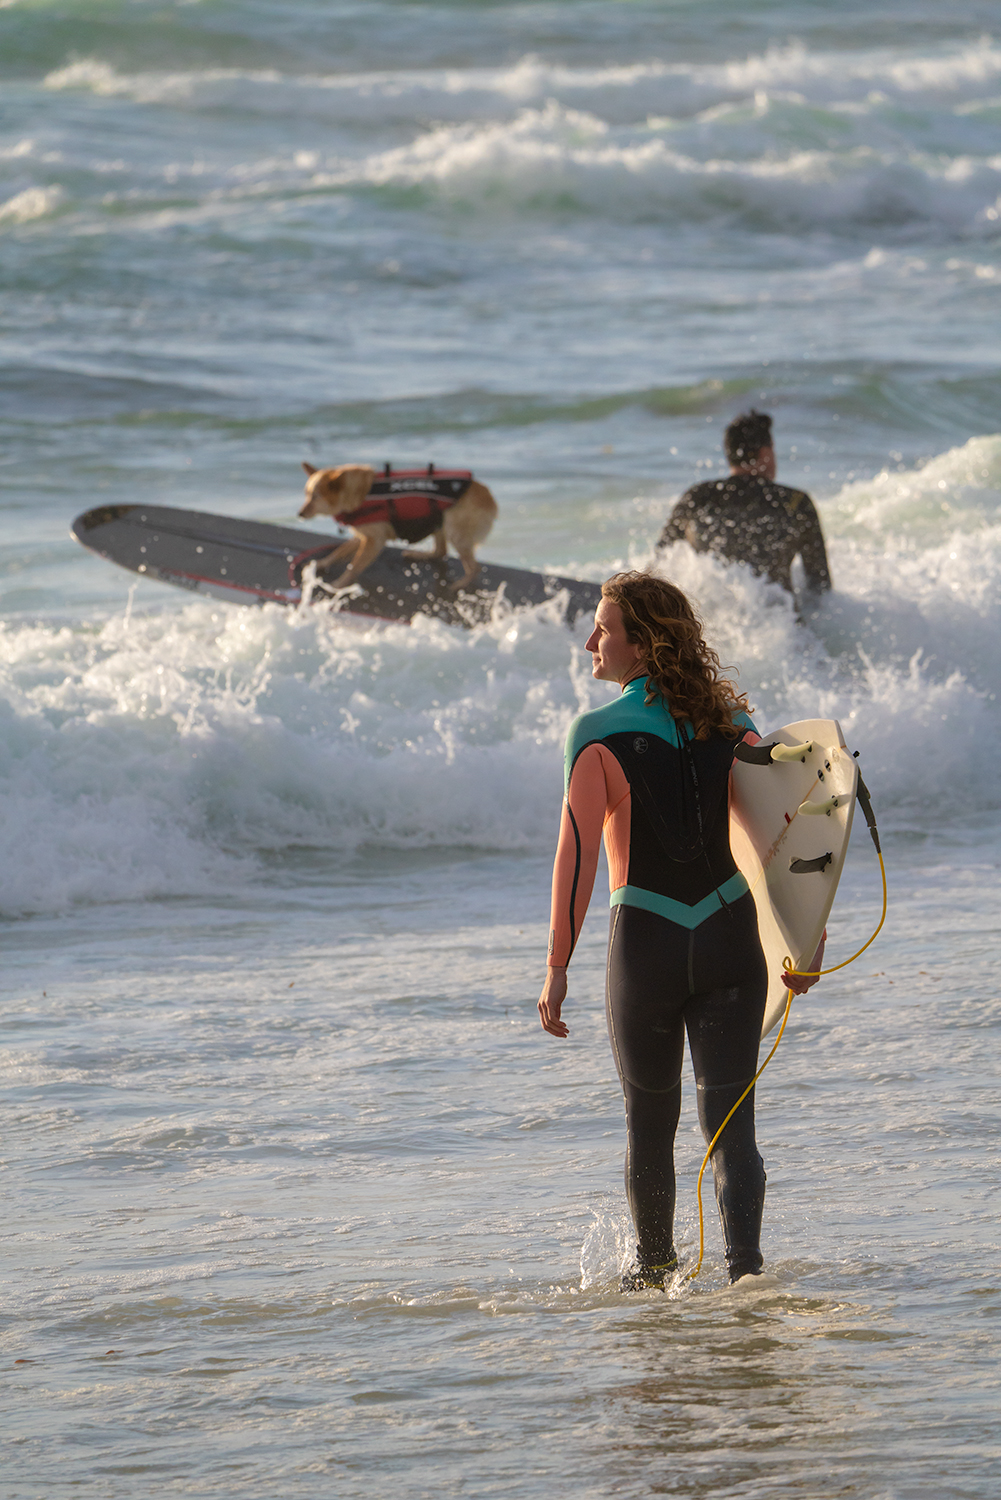 And yes, Kando provided a surfing dog for us to photograph. It's all part of the show, folks...